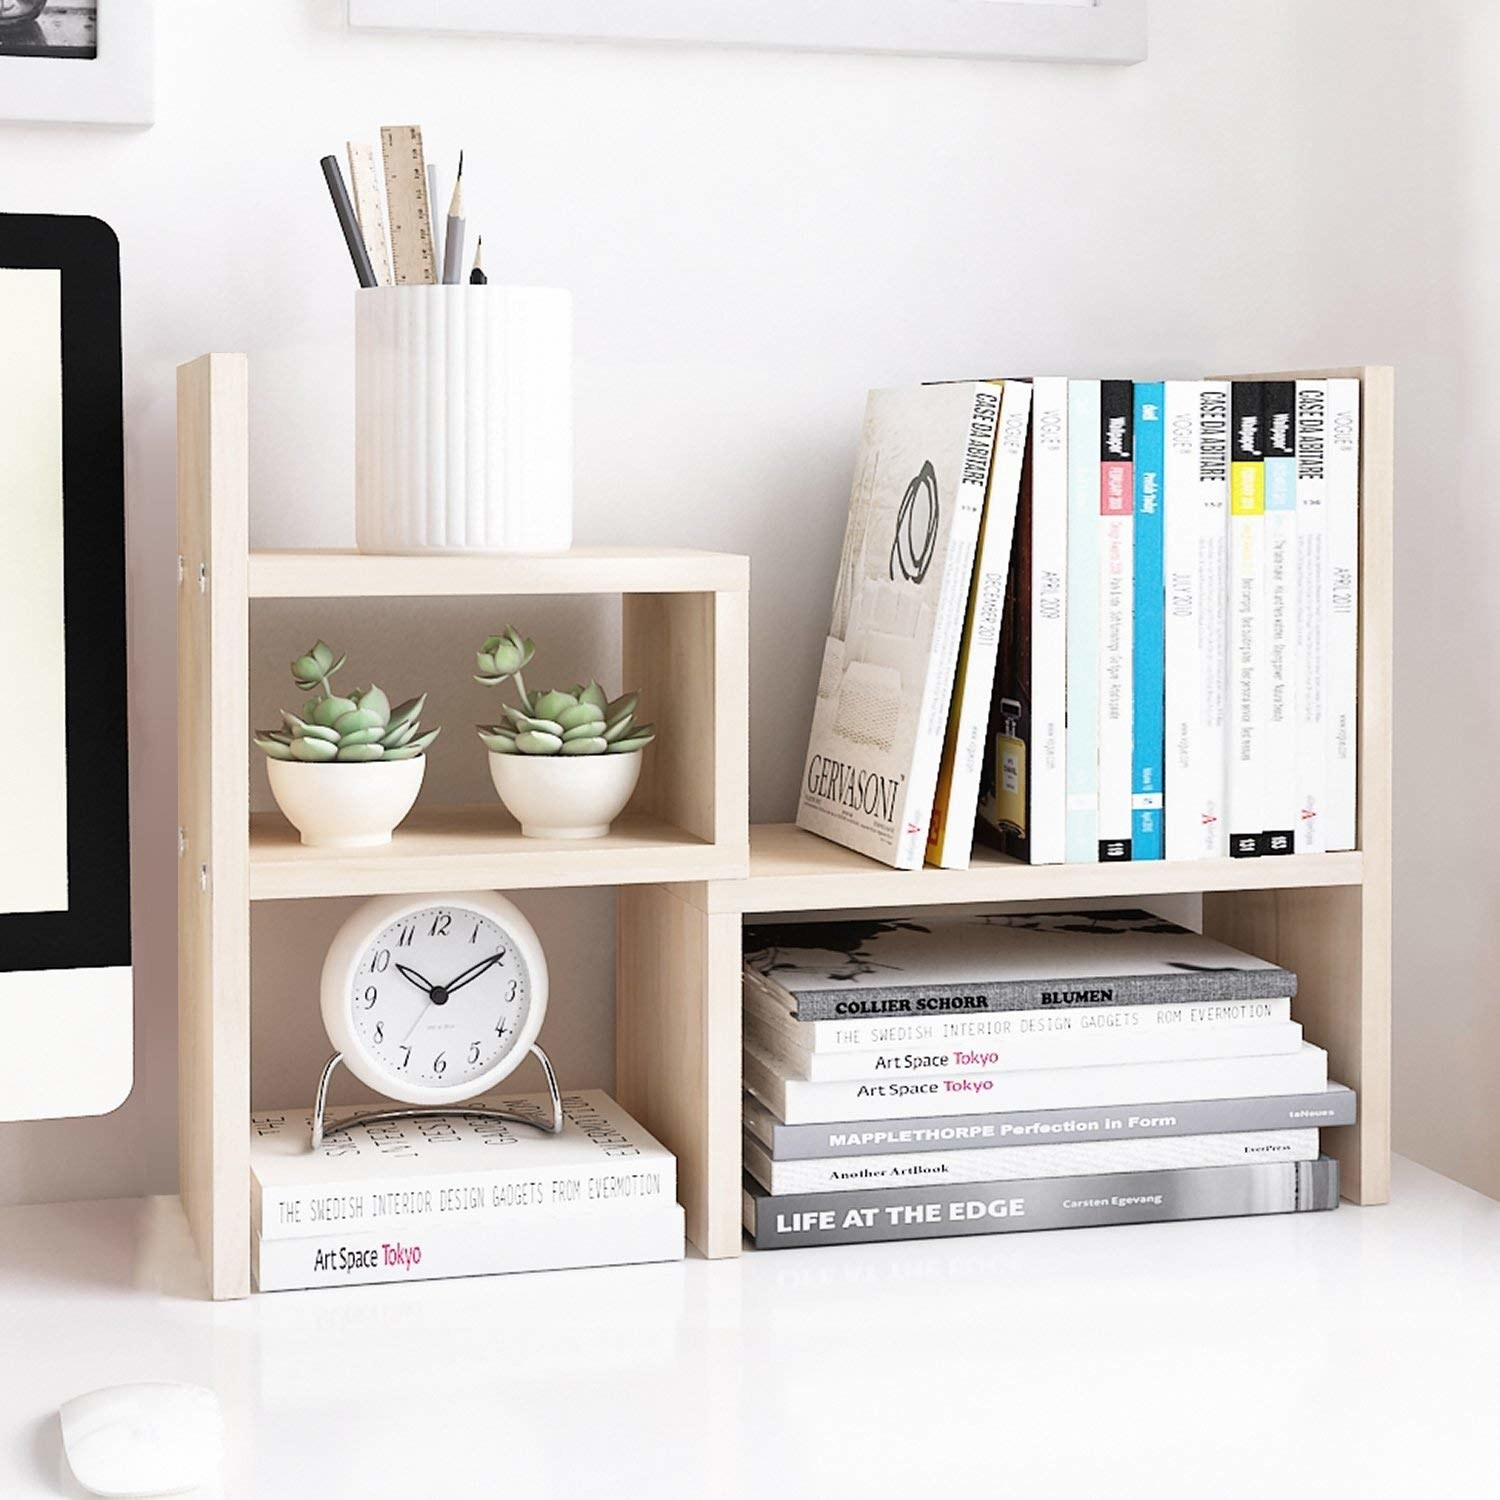 the light wood shelf set holding books, succulents, a clock, and a pencil cup